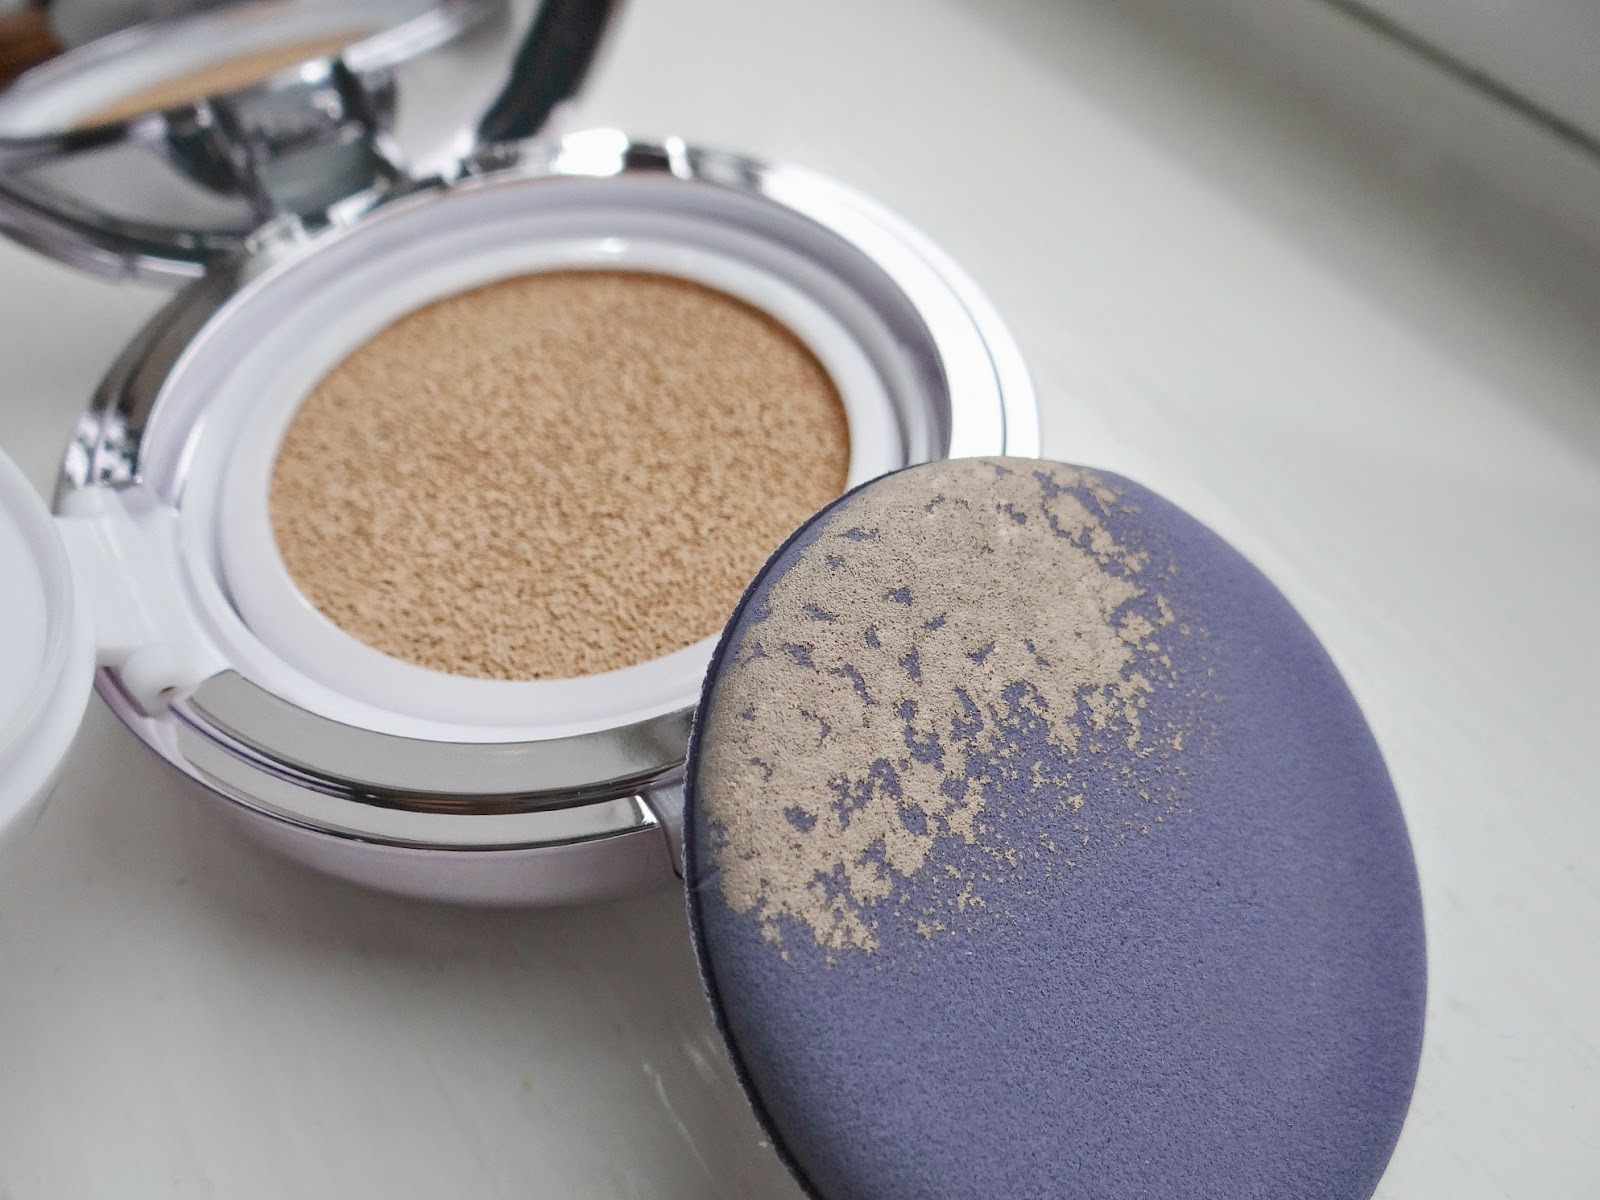 Korean Beauty, Hera UV Mist Cushion C23, CC Cushion